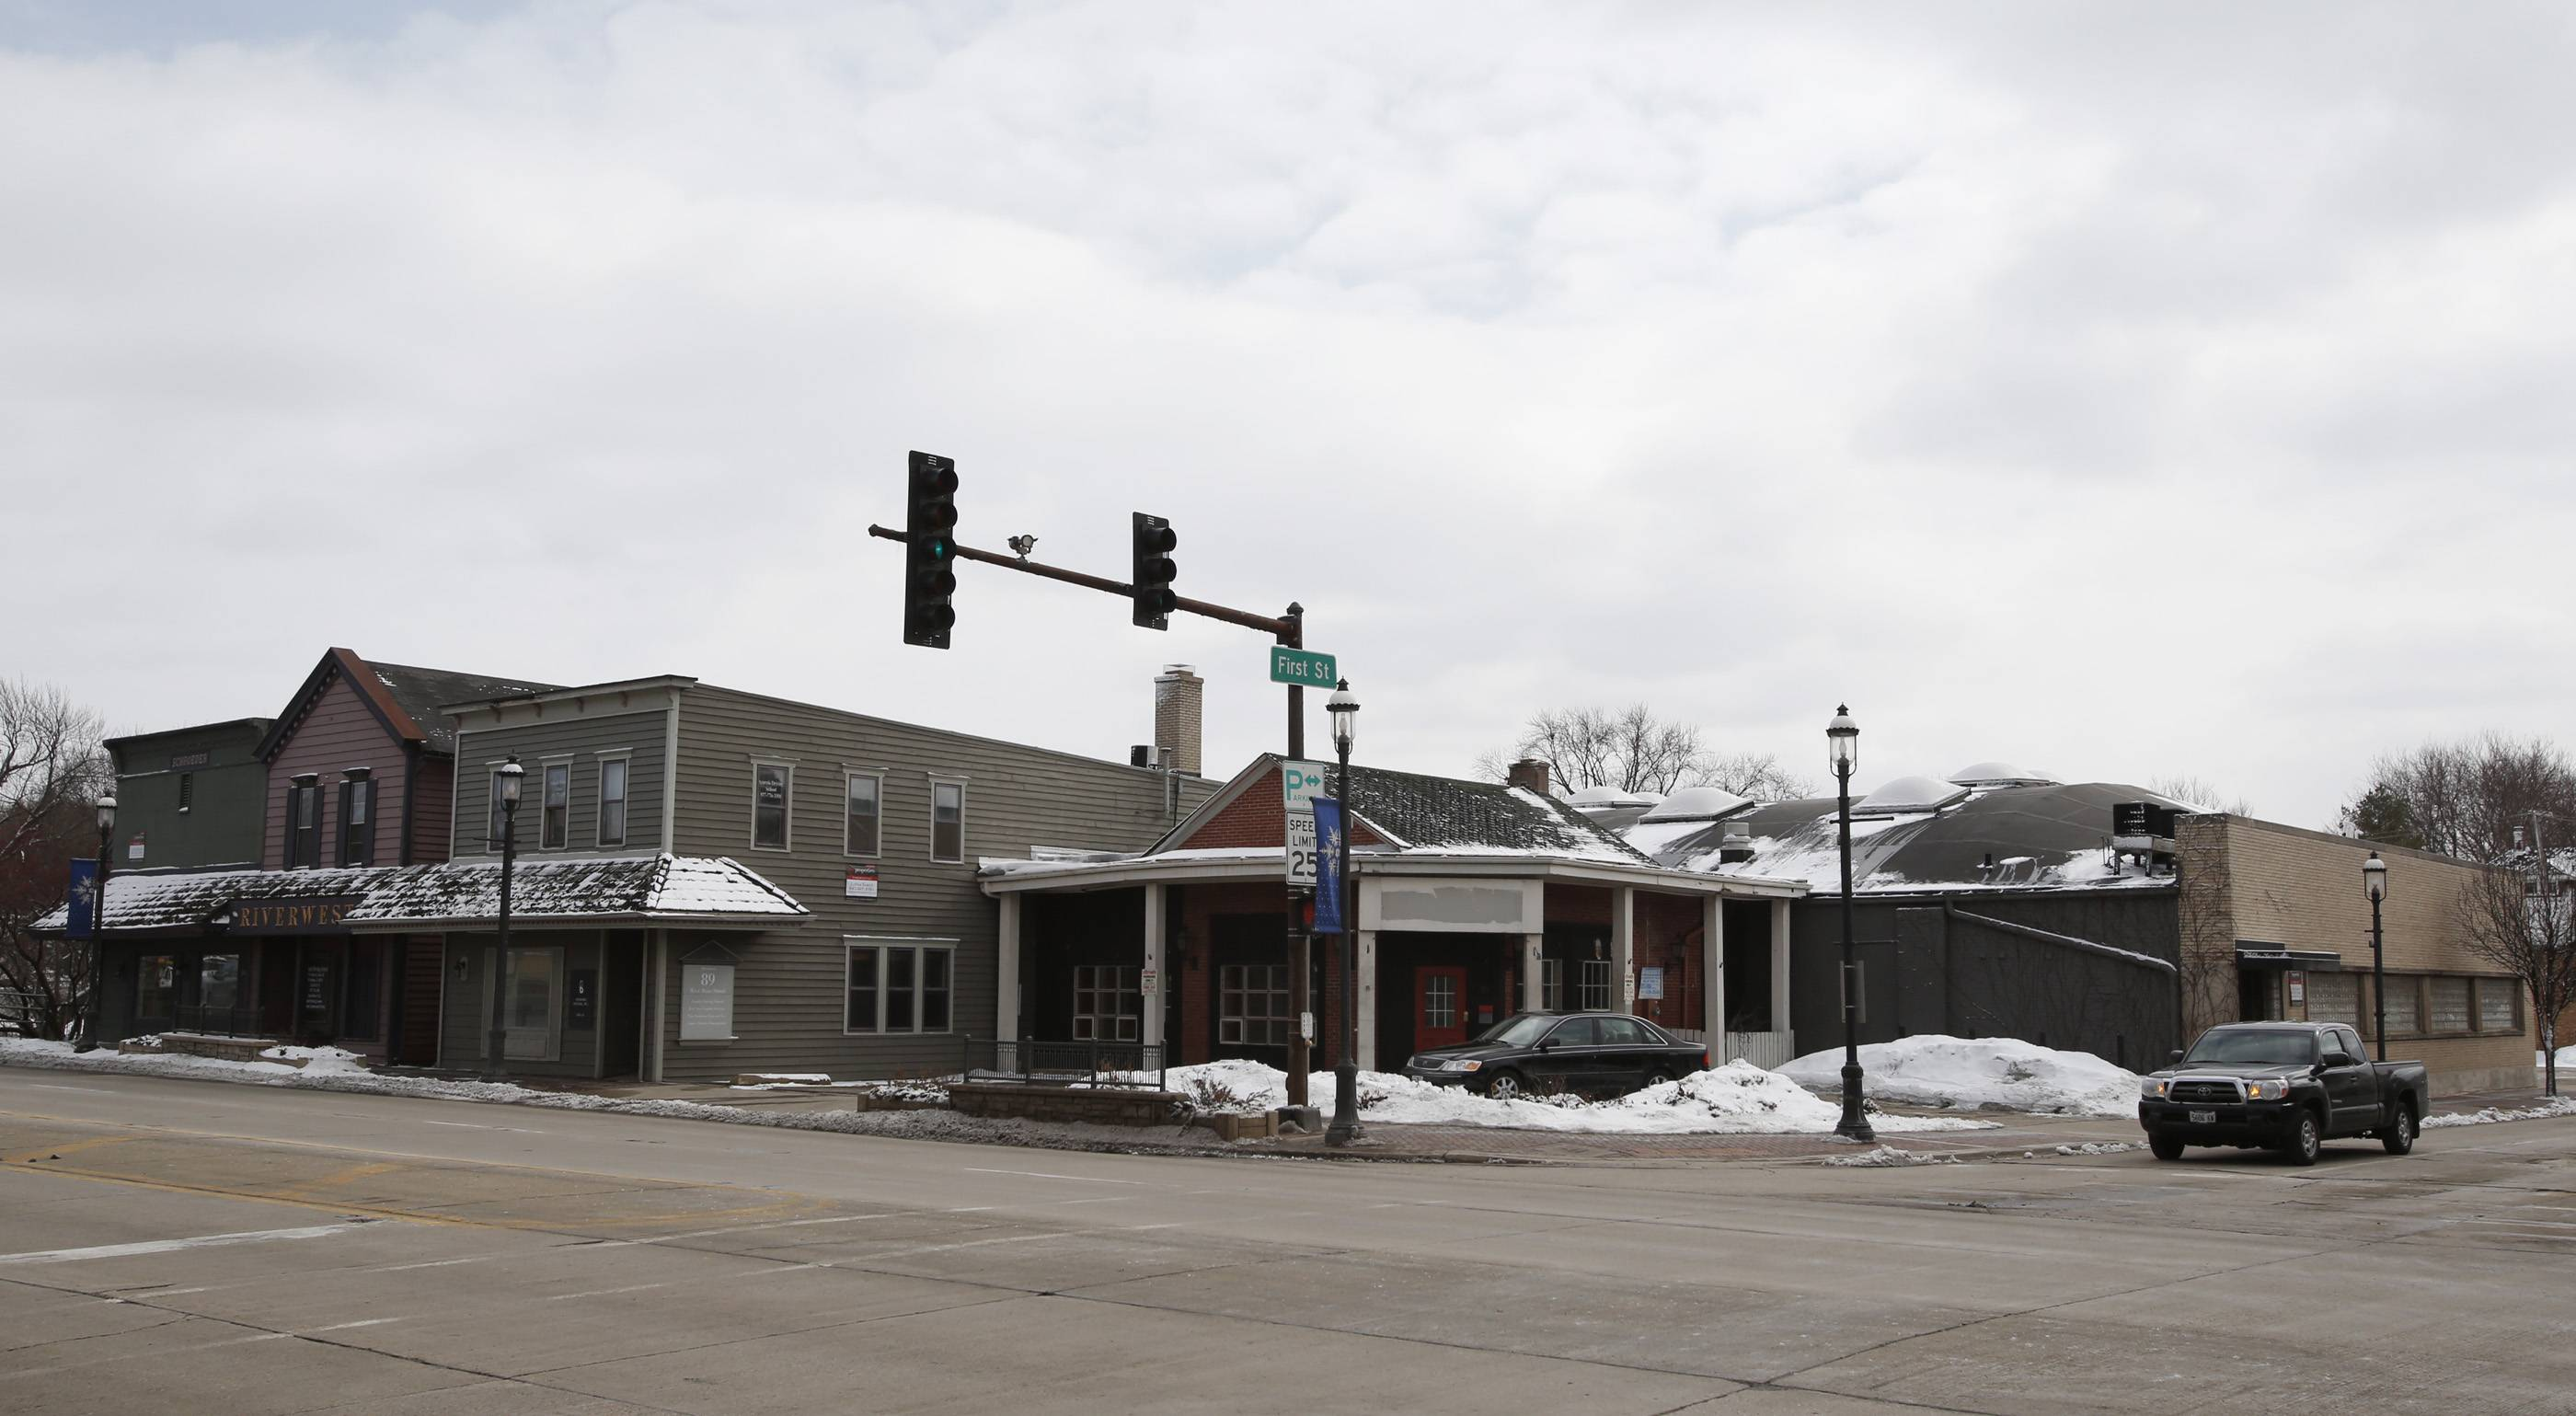 West Dundee officials are working on a redevelopment agreement to rehab this section of downtown, on the southeast corner of First Street and Route 72.